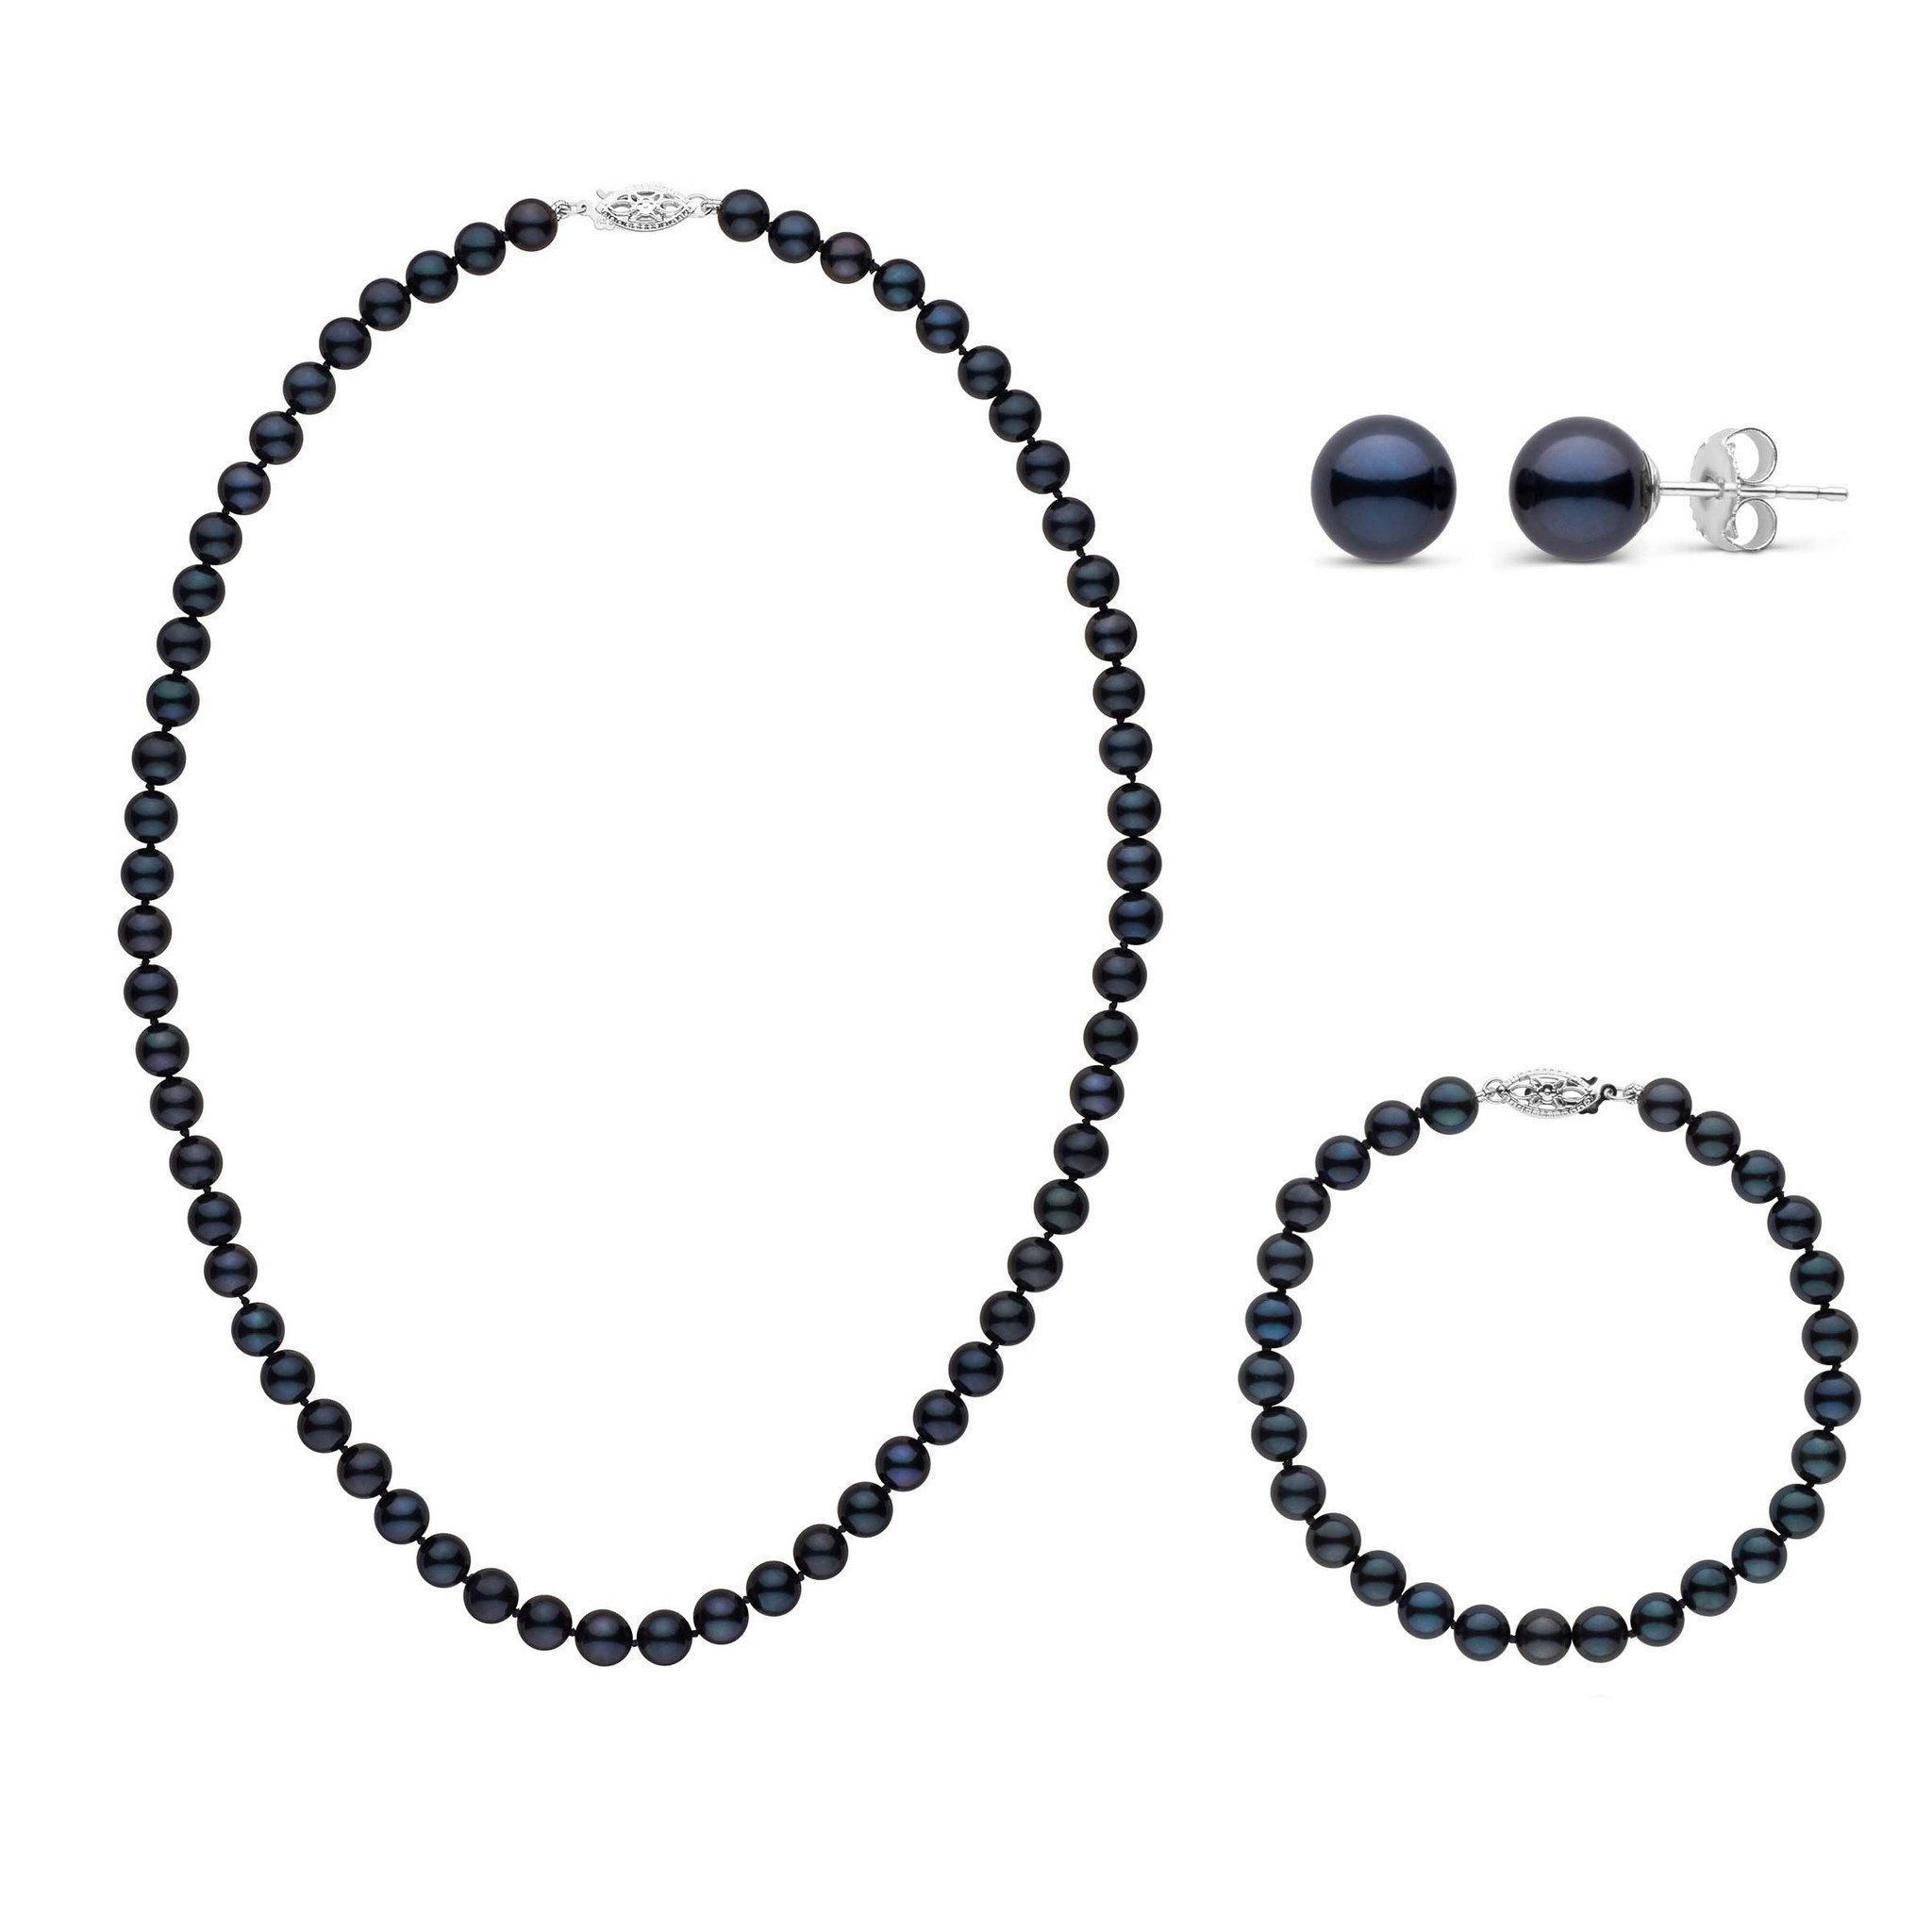 16 Inch 3 Piece Set of 6.0-6.5 mm AA+ Black Akoya Pearls